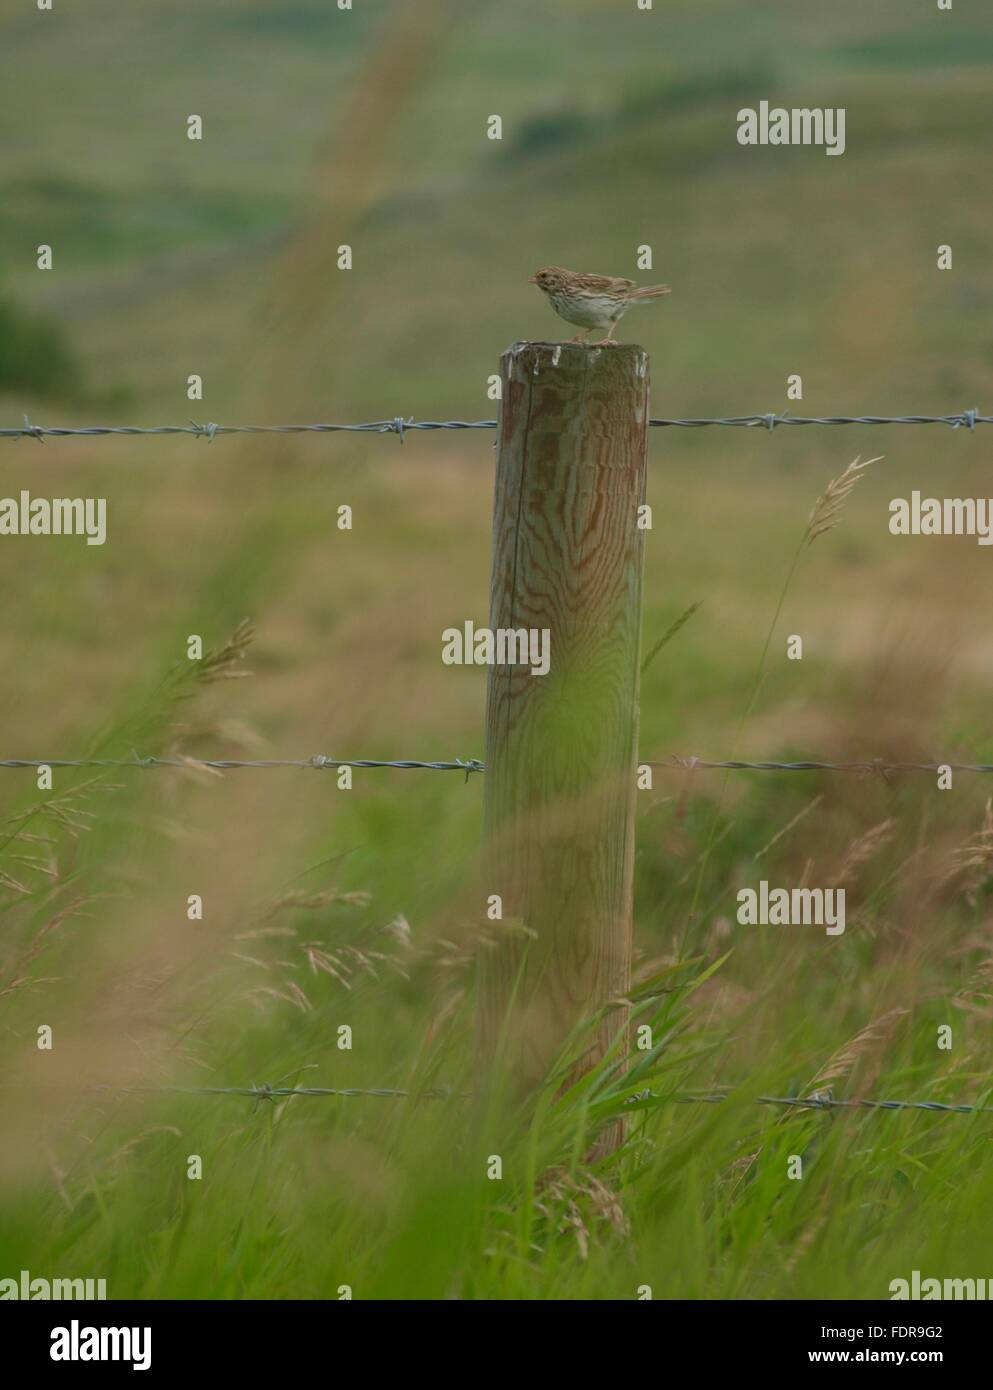 Song Bird on Fence Post - Stock Image